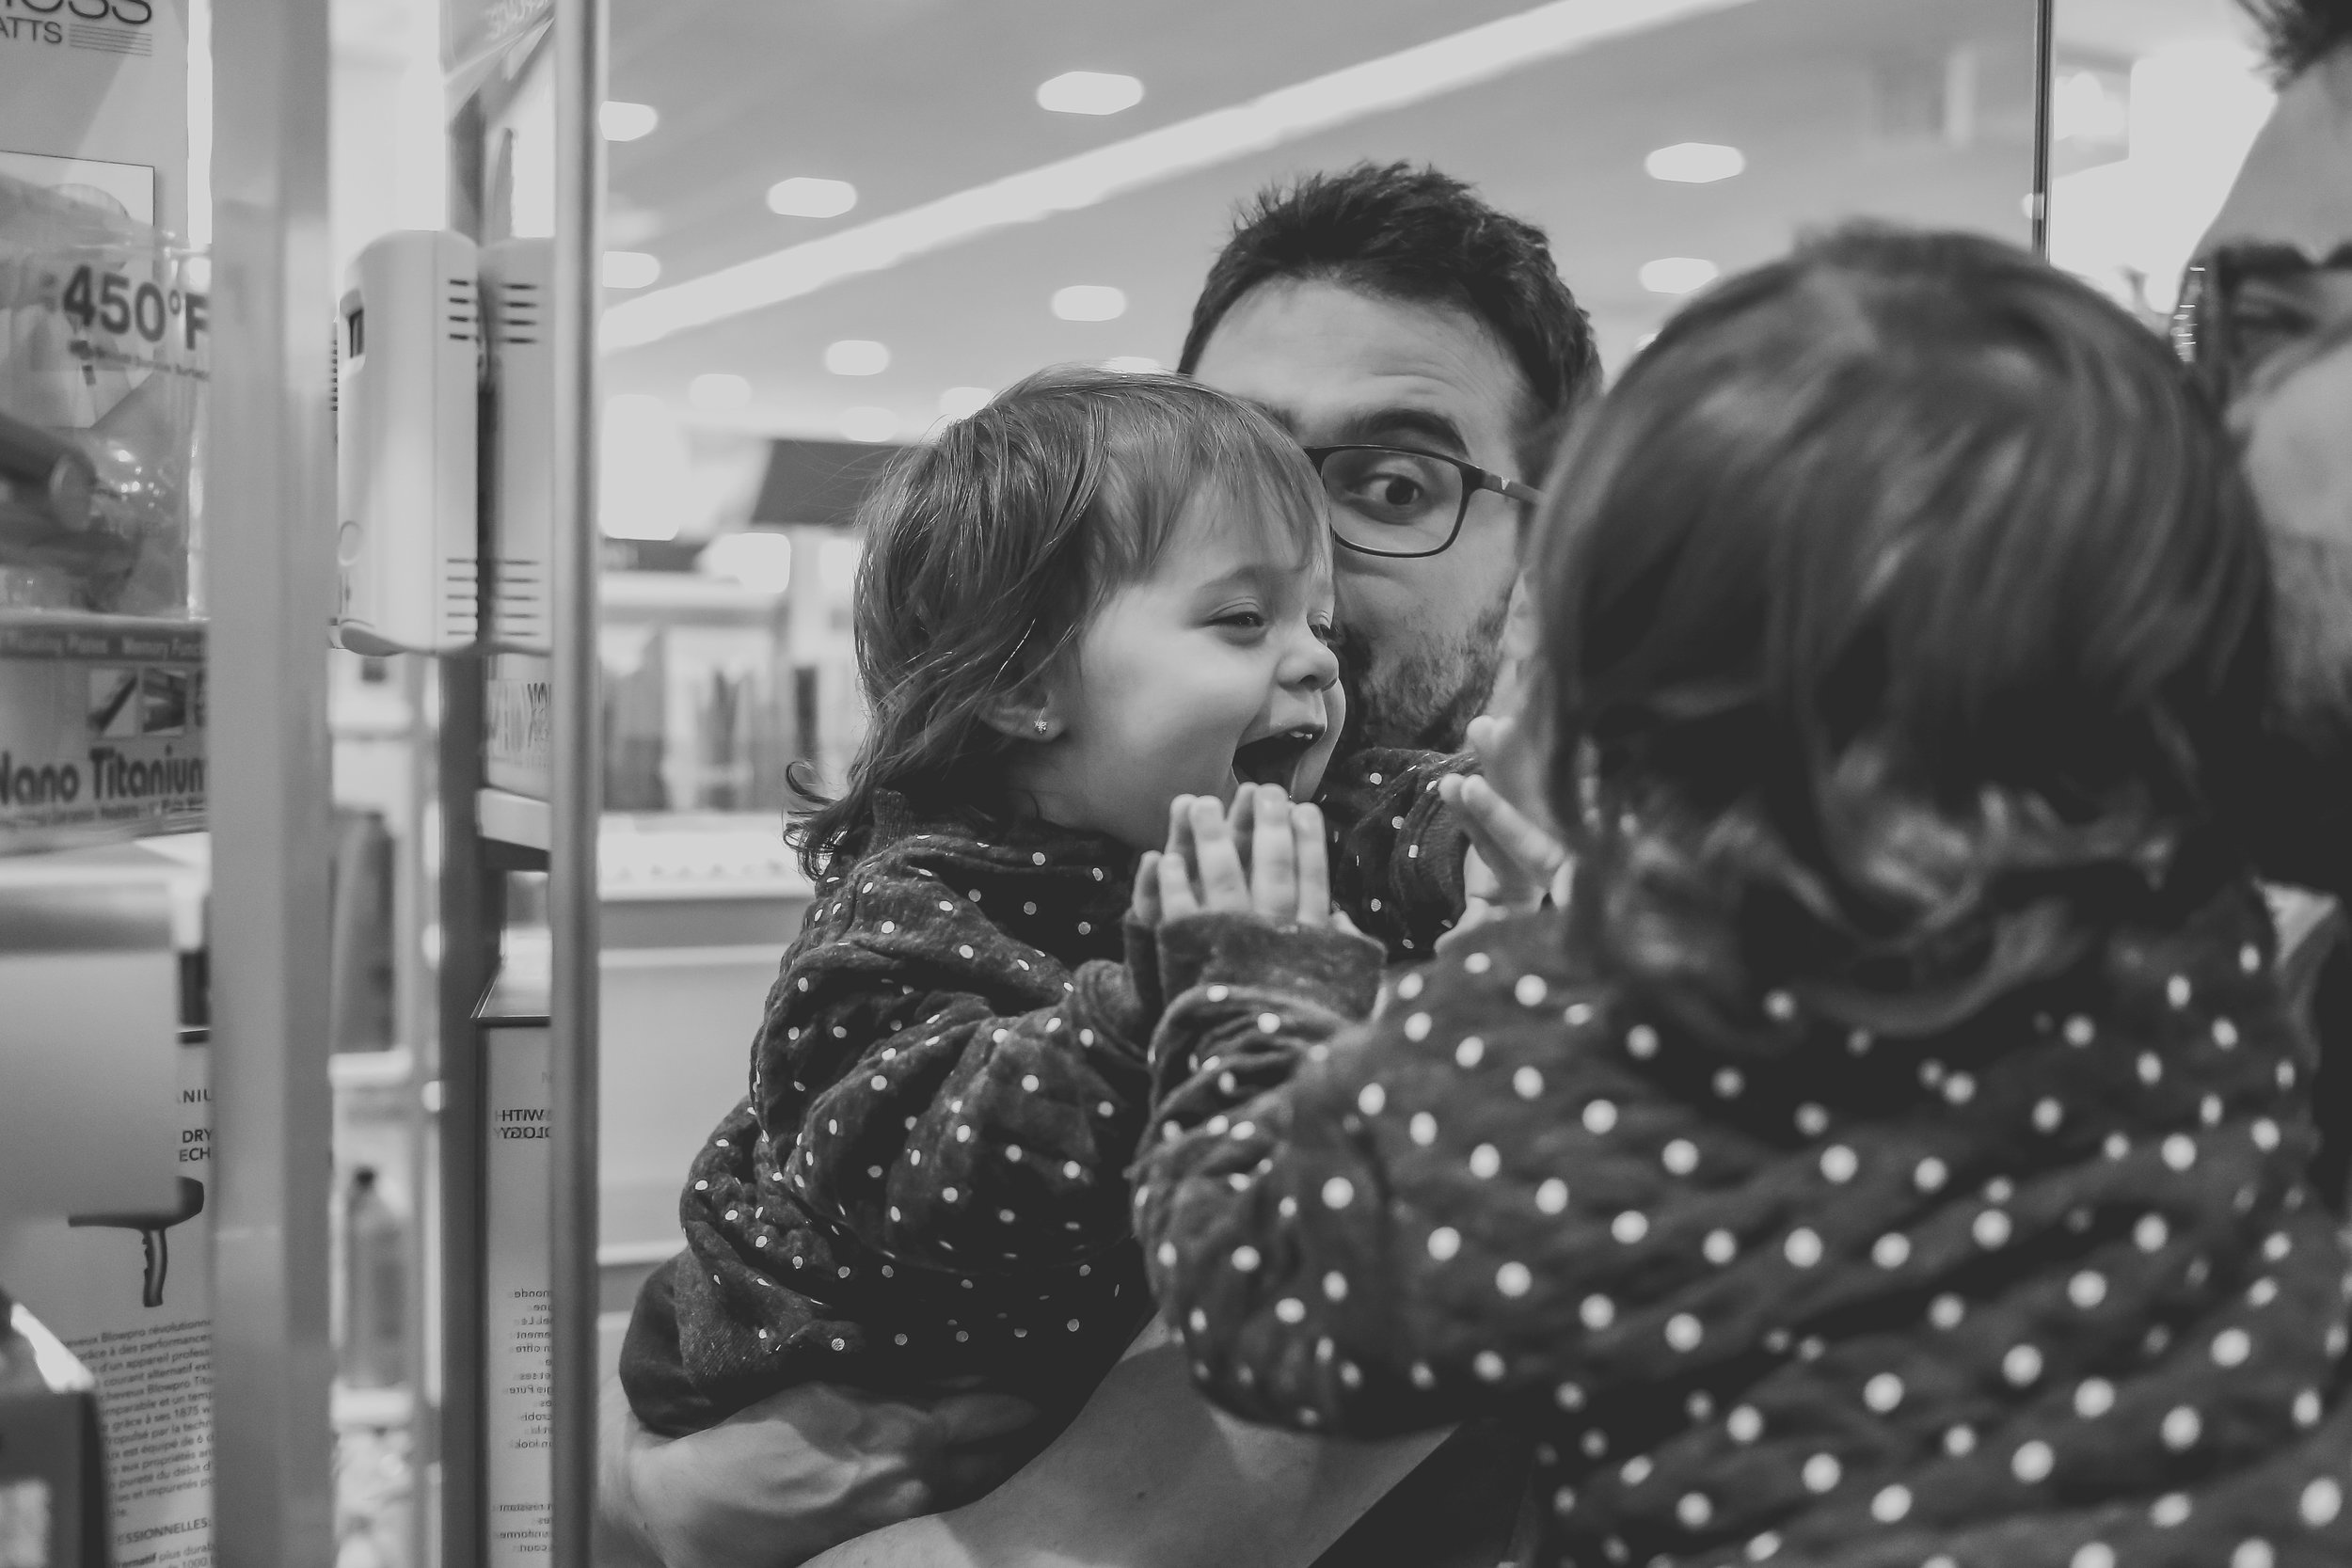 Playing in the mirror at Ulta beauty supply store in Staten Island, NY. Storytelling Family Photography.